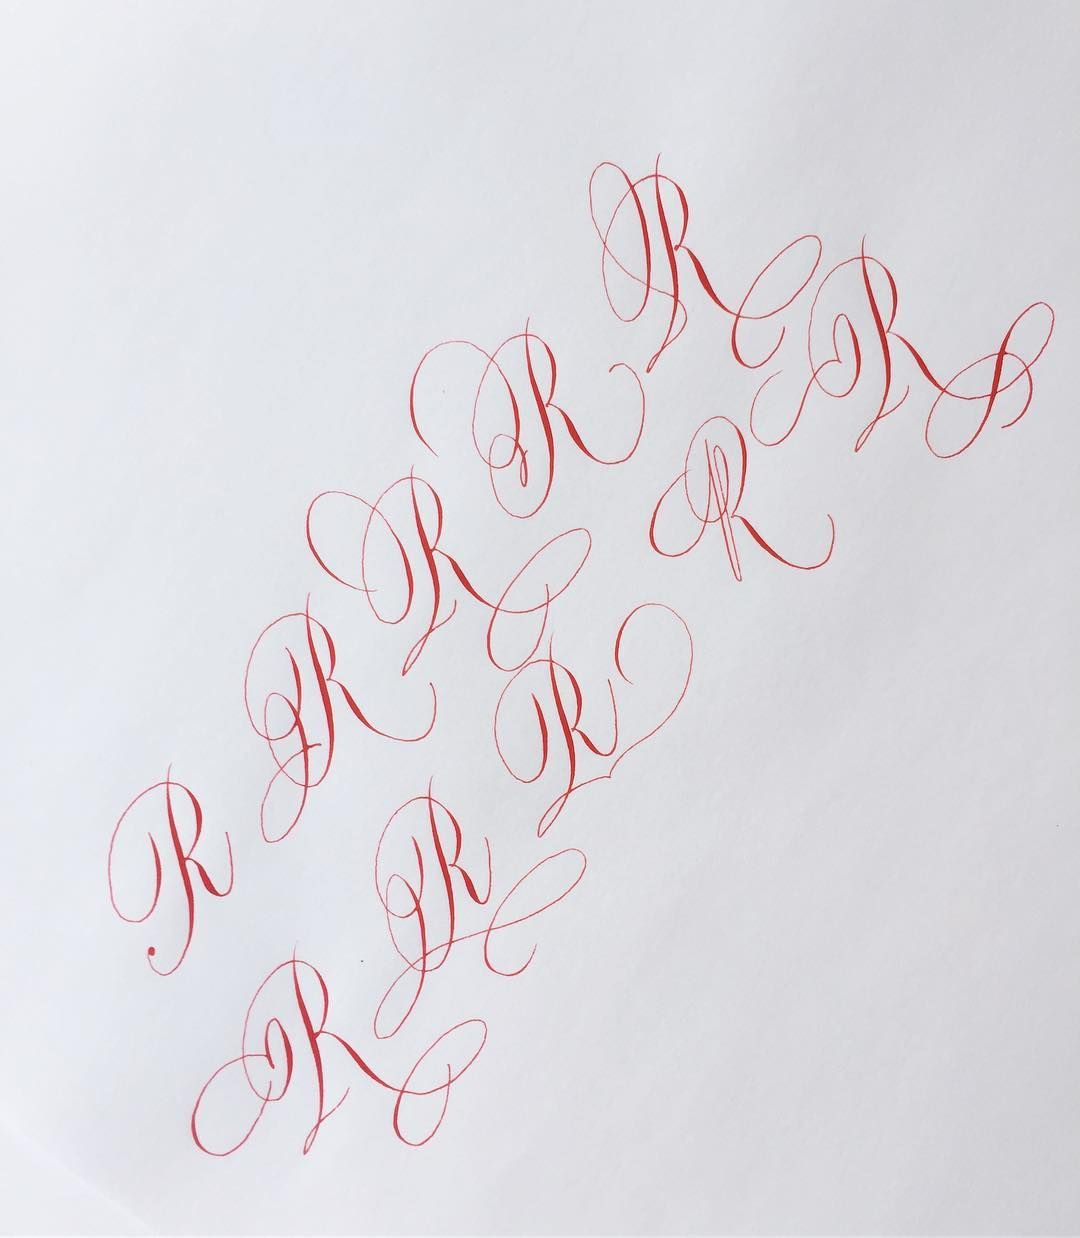 I used to not like R, but after found some ways to flourish it, I think I am falling in love with this letter